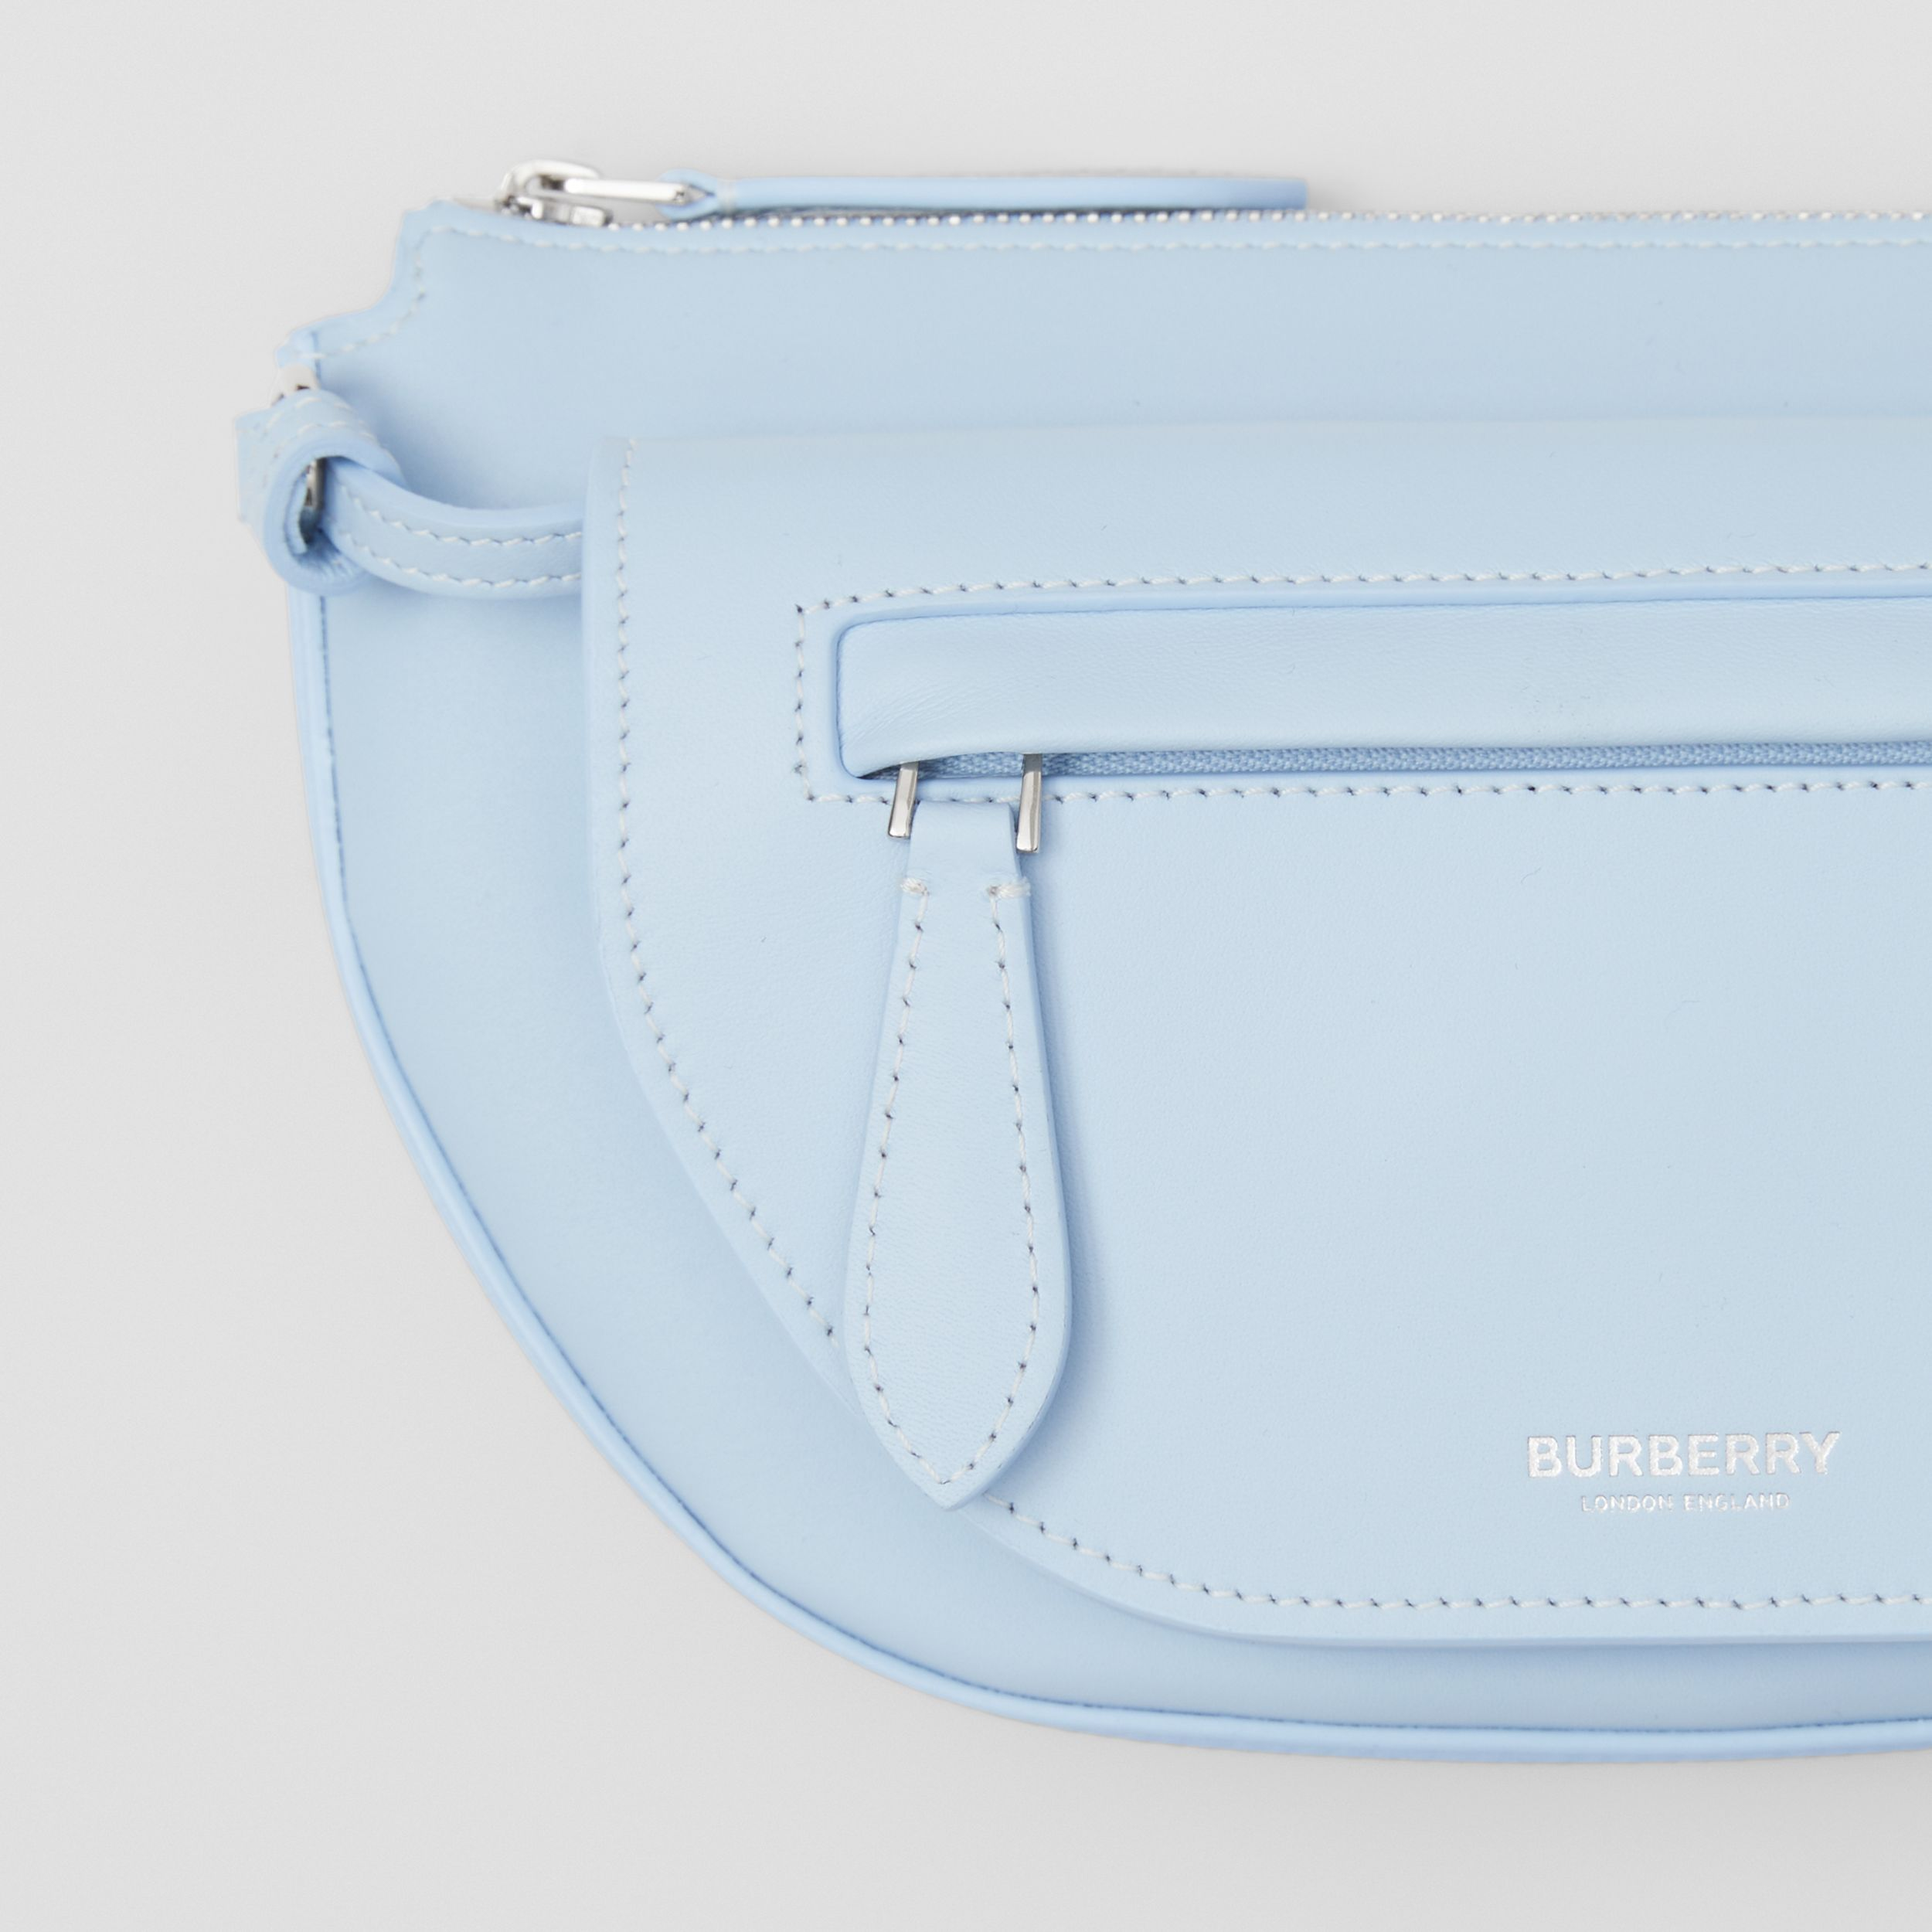 Mini Leather Double Olympia Bag in Pale Blue - Women | Burberry - 2